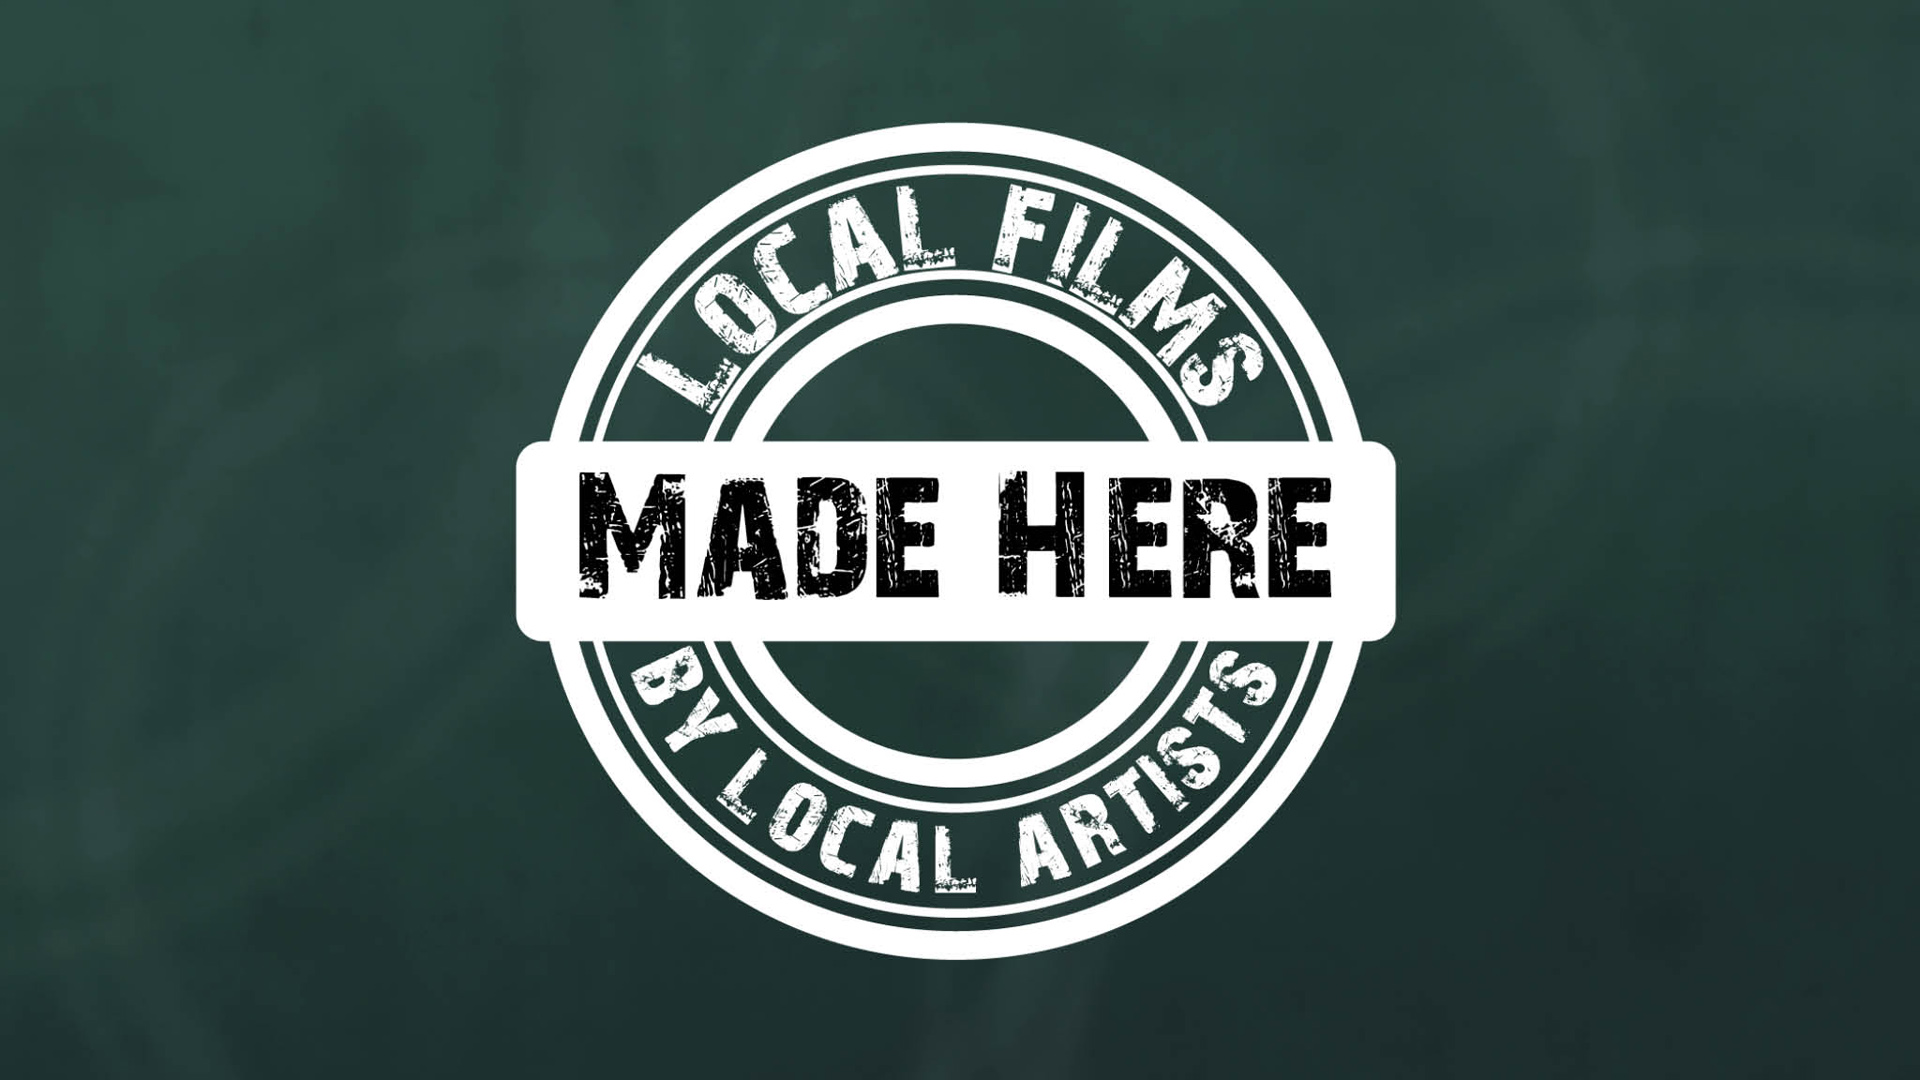 Made Here logo